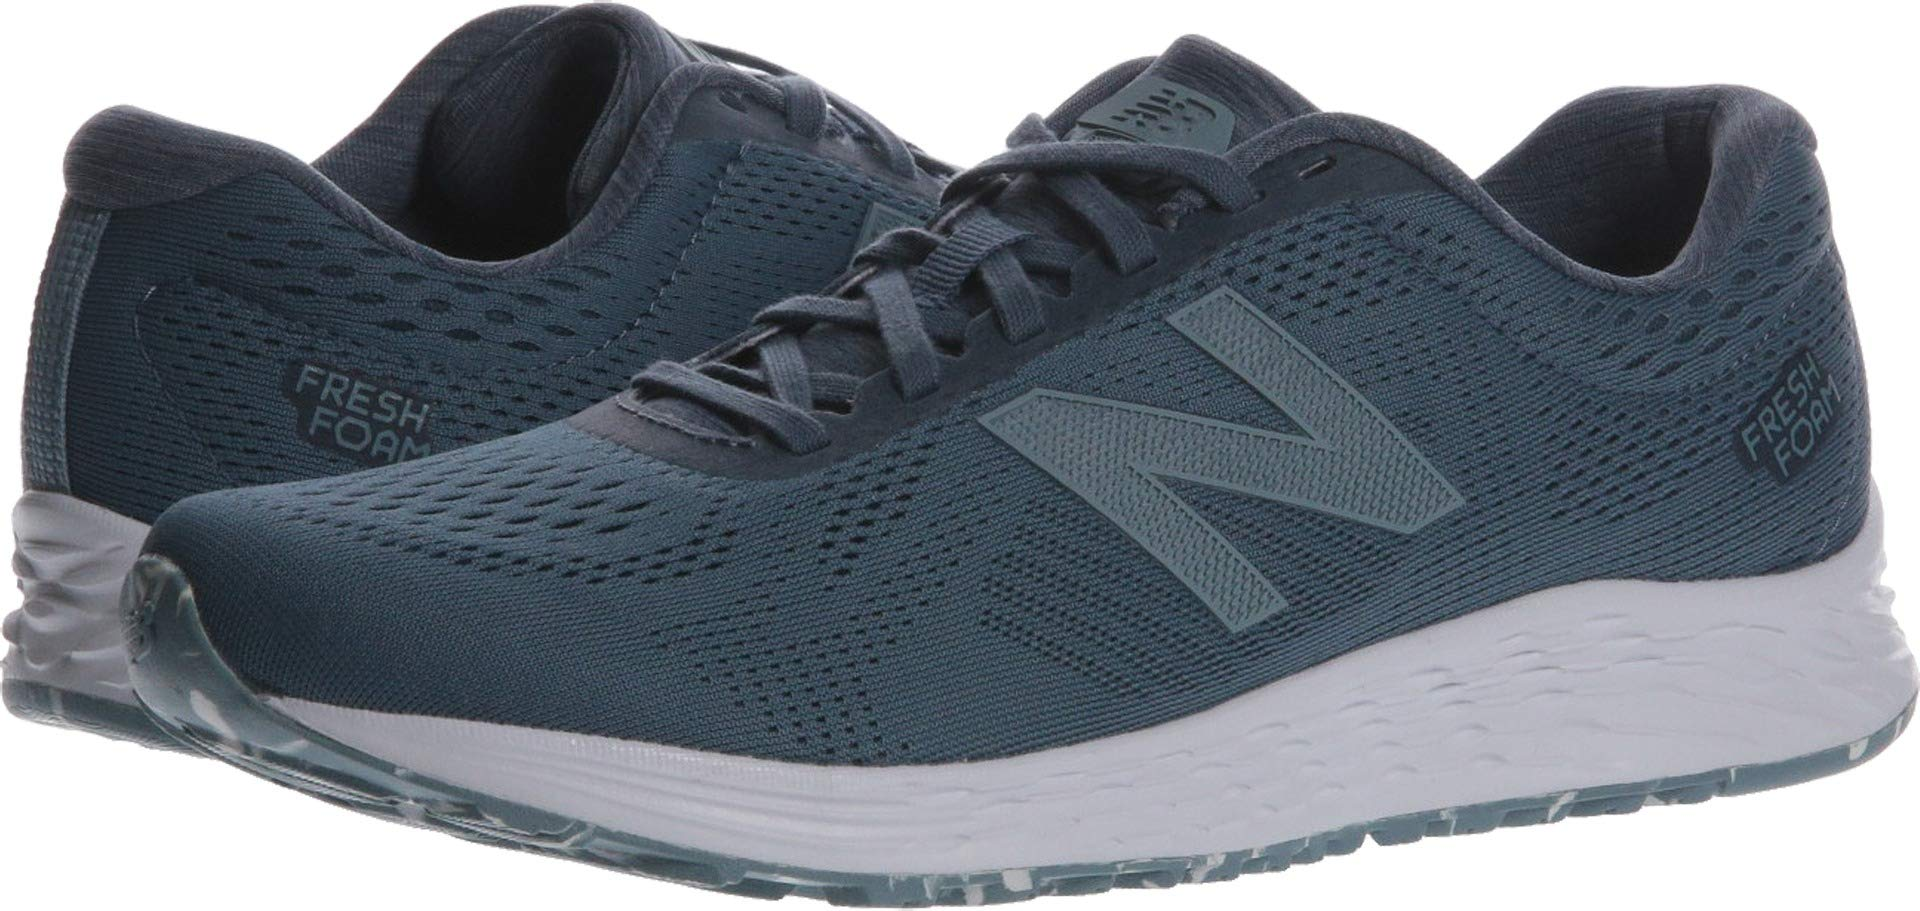 New Balance Women's Fresh Foam Arishi V1 Running Shoe, Grey, 5 B US by New Balance (Image #1)